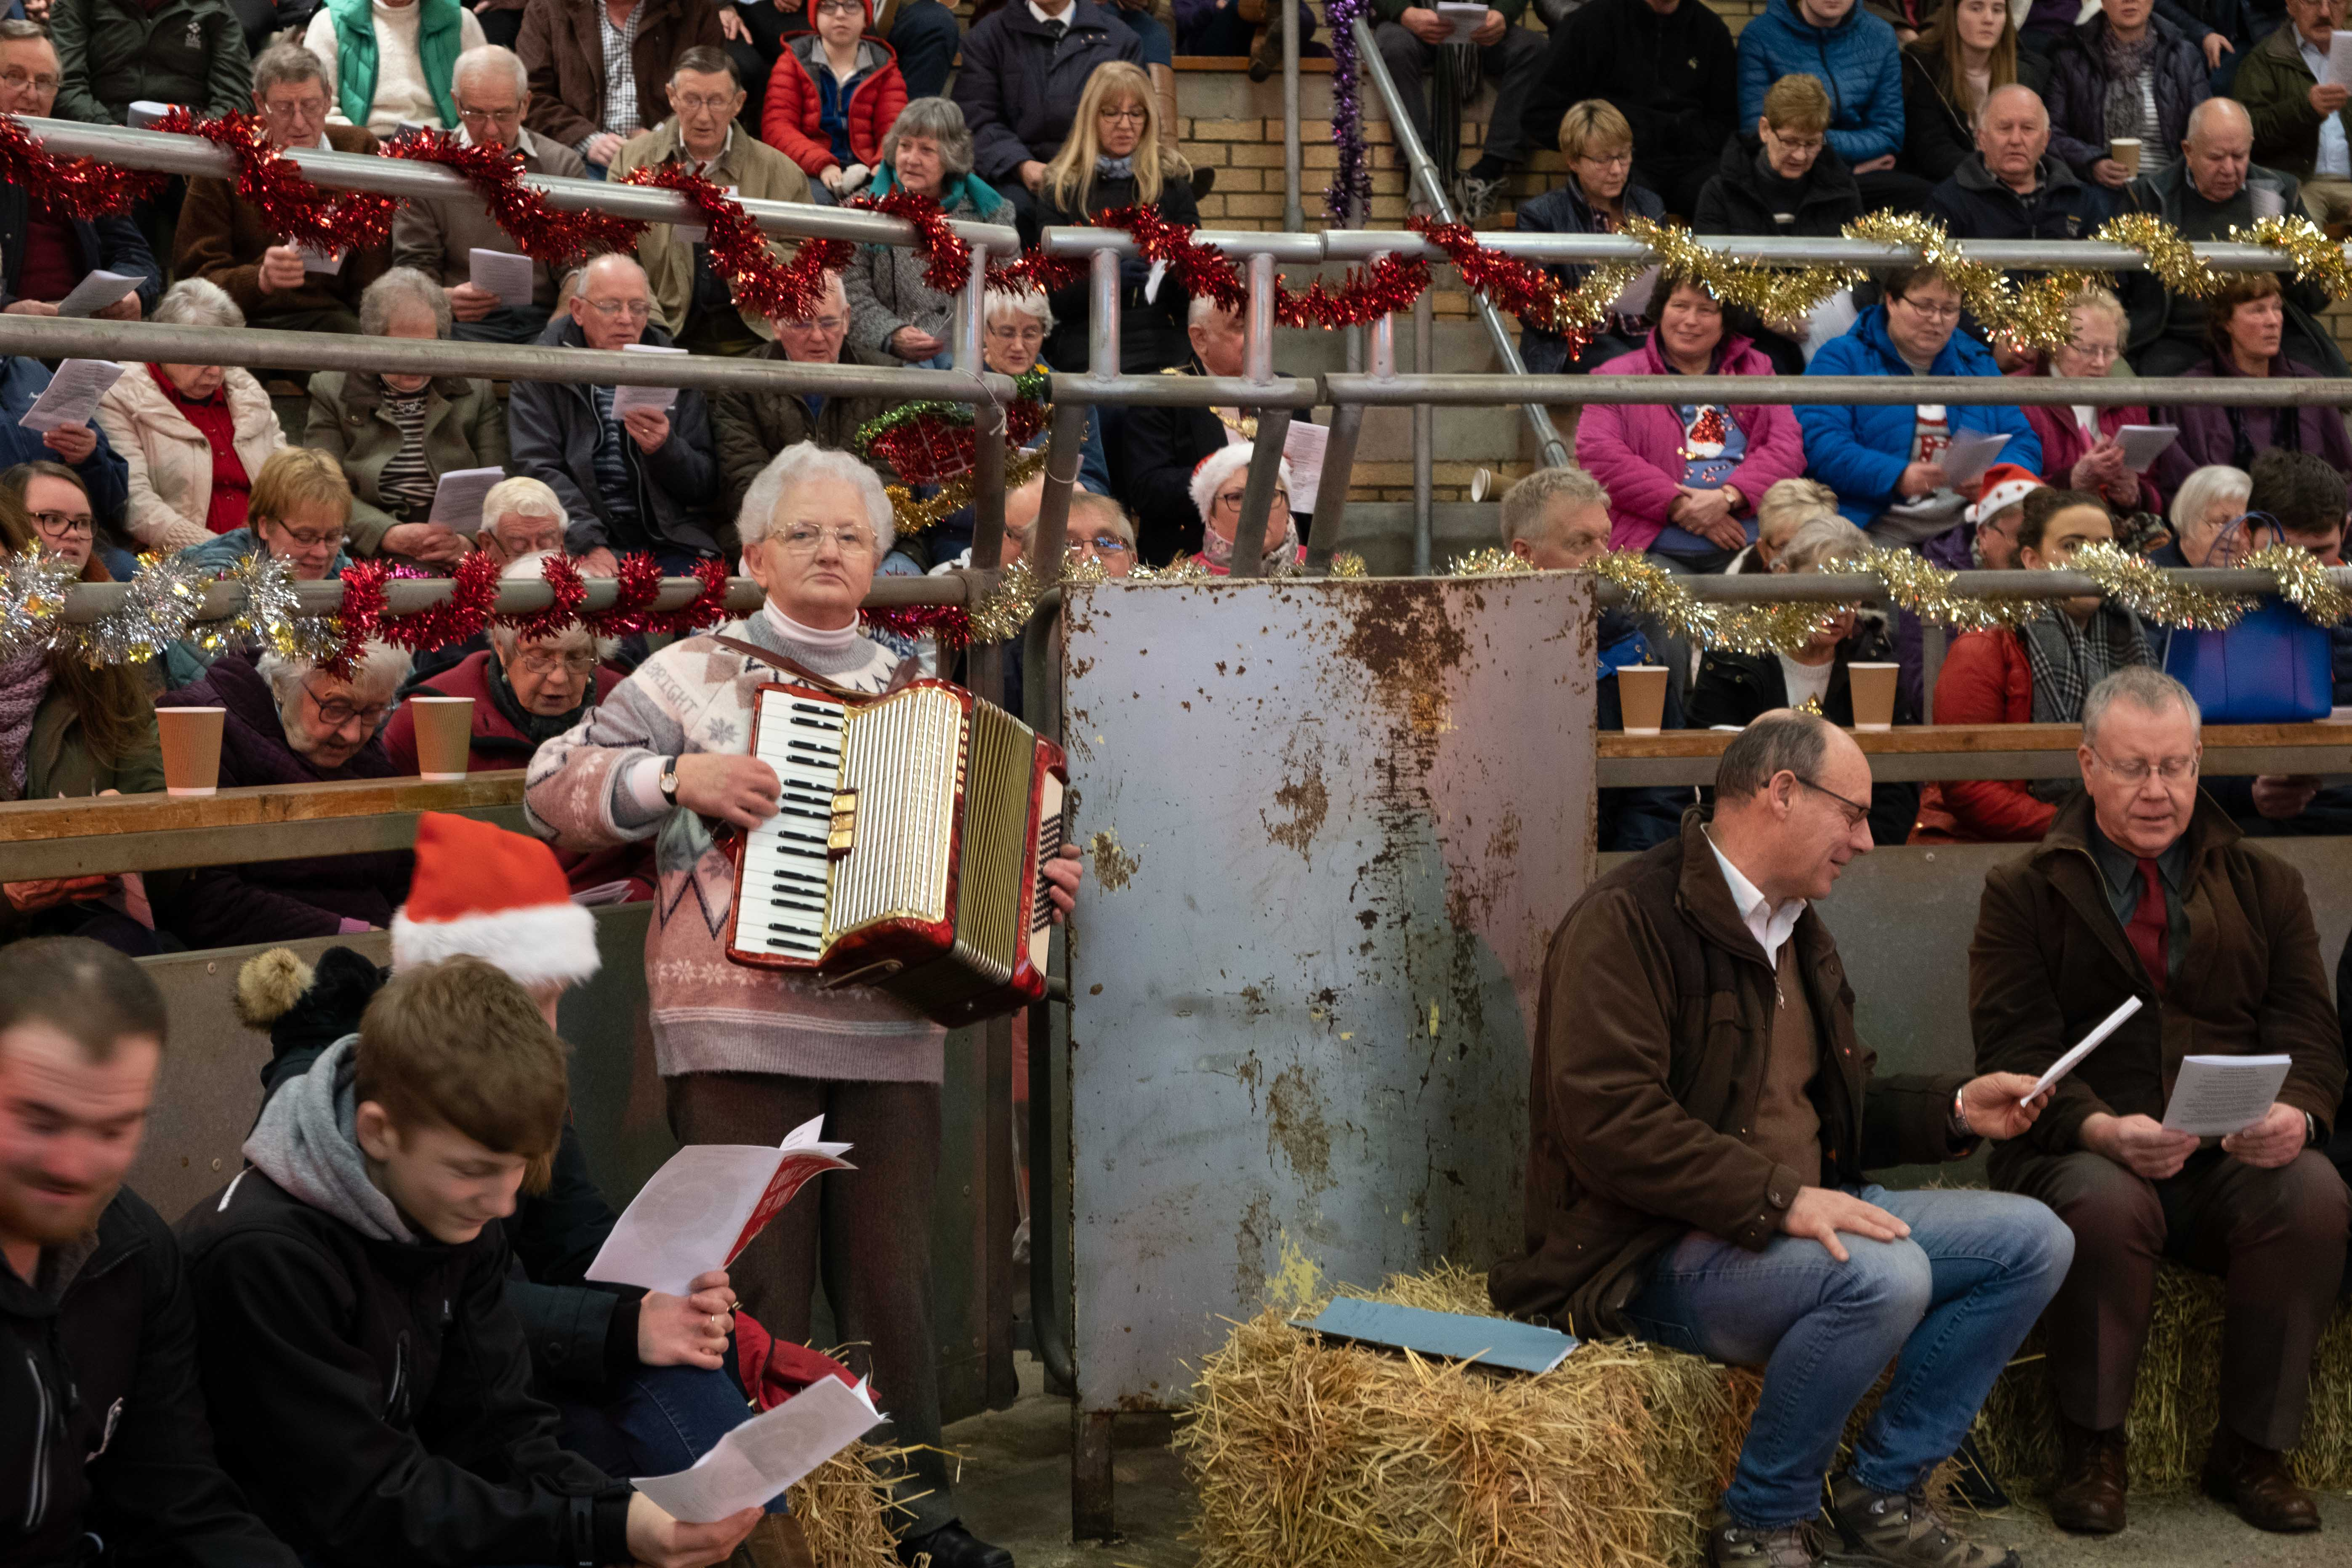 The event was free, but donations were made to Scotland's rural charity, RSABI.